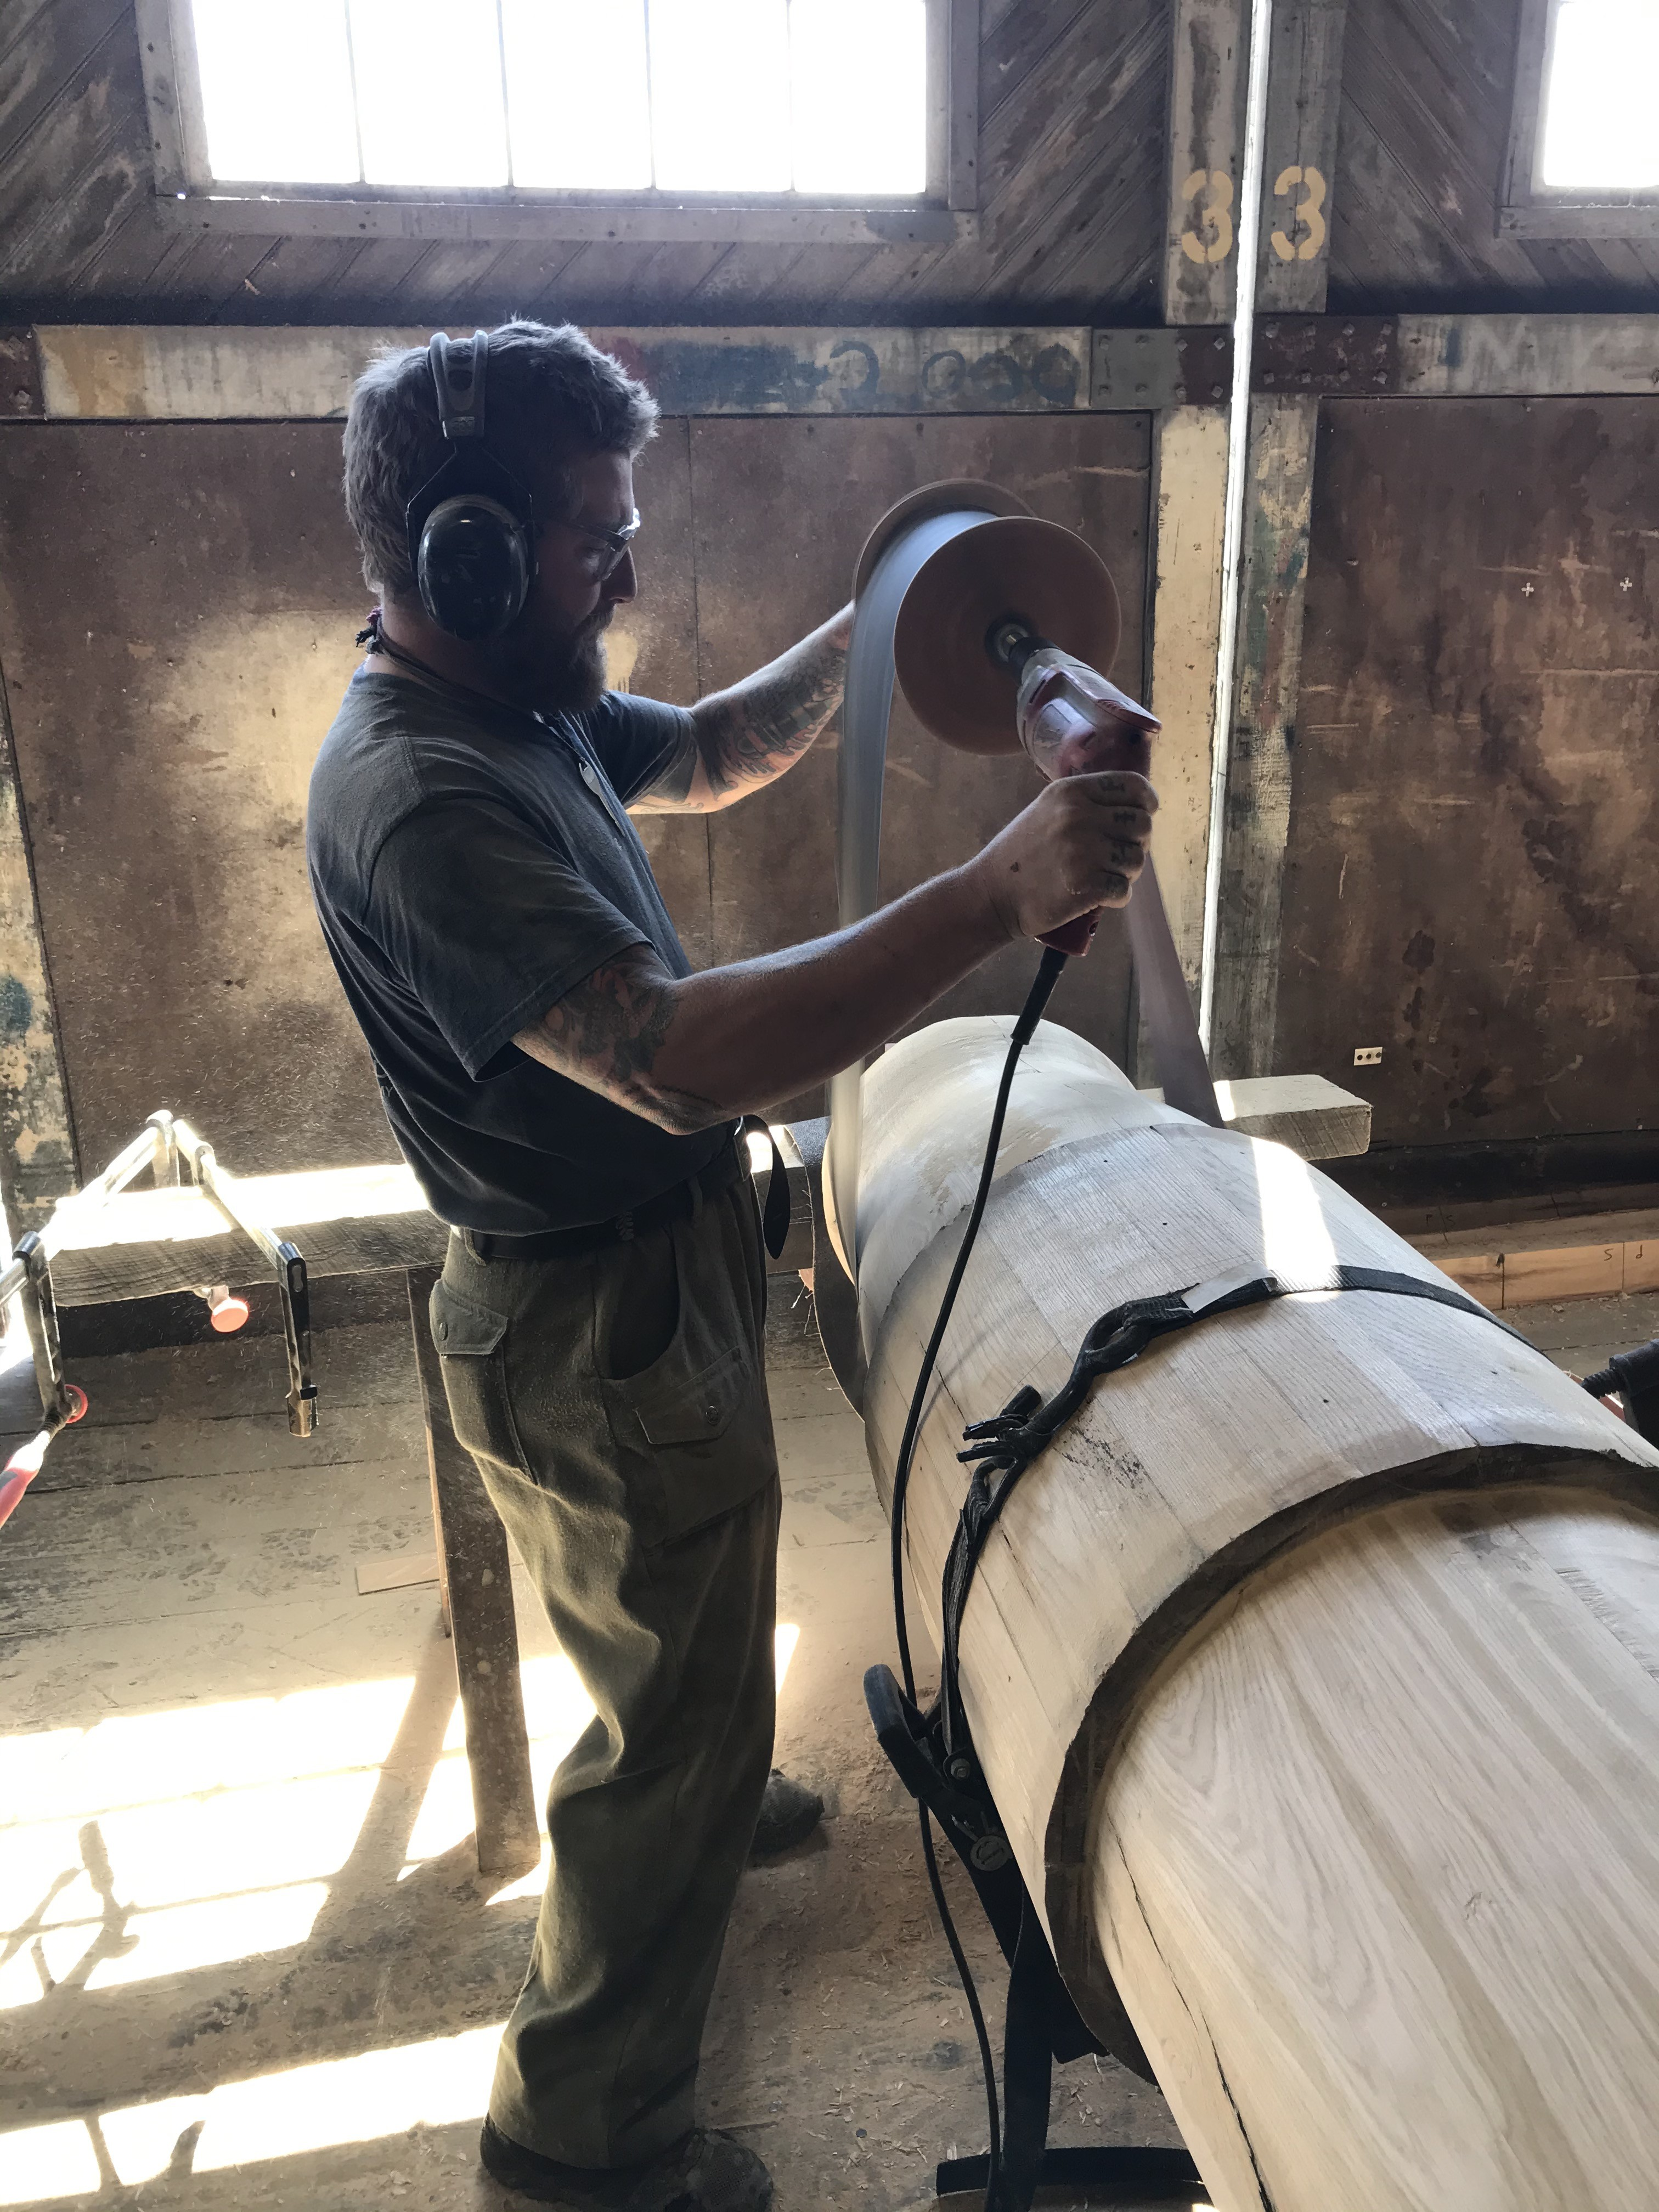 One of our shipwrights carefully sands and shapes the new windlass.  This piece was built to mimic the same windlass that arrived with the ship, and will be a functional replica of centuries-old technology.